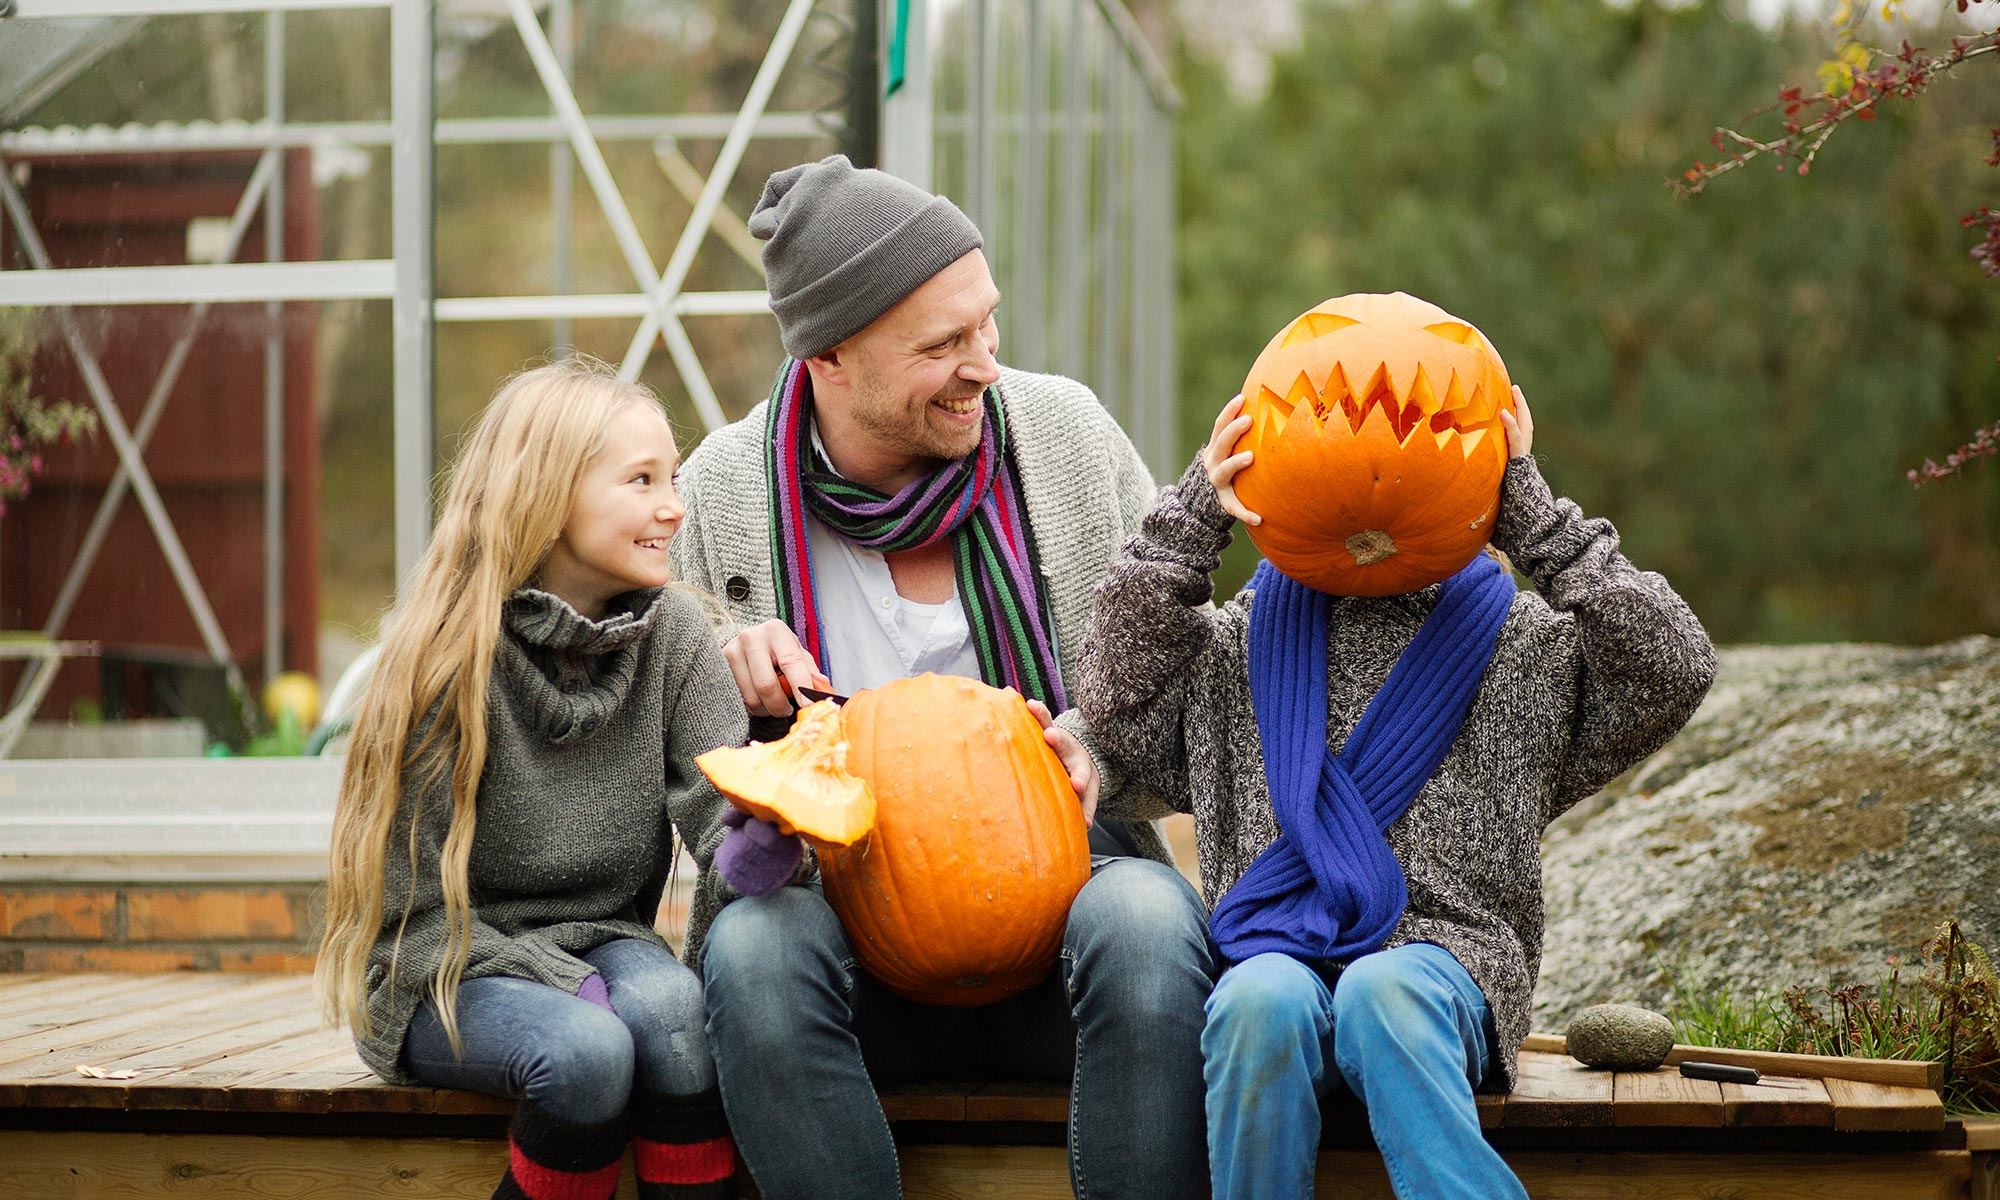 Two kids and a dad with pumpkins.